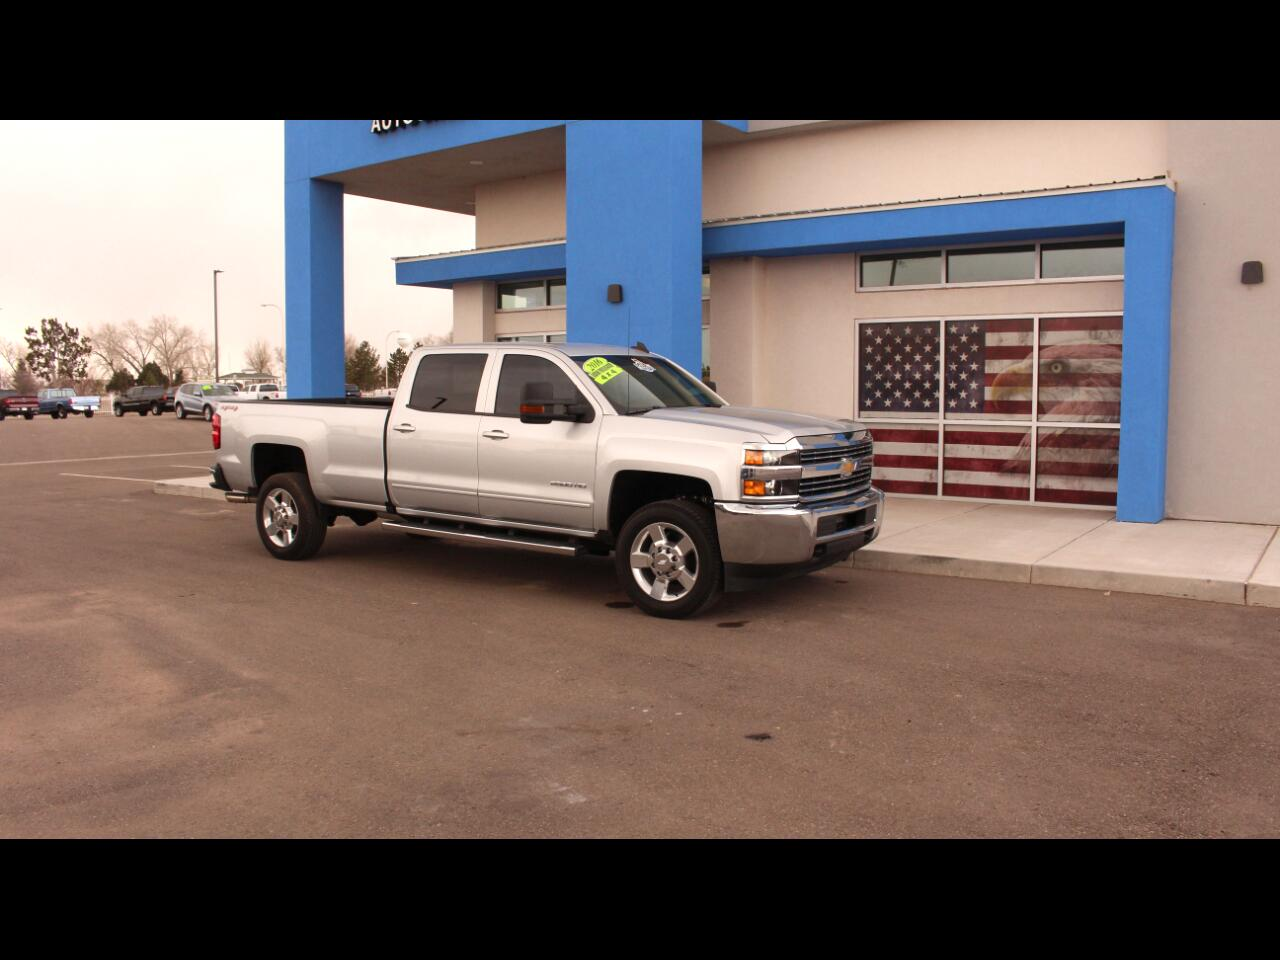 2016 Chevrolet Silverado 2500HD LT Crew Cab Long Box 4WD